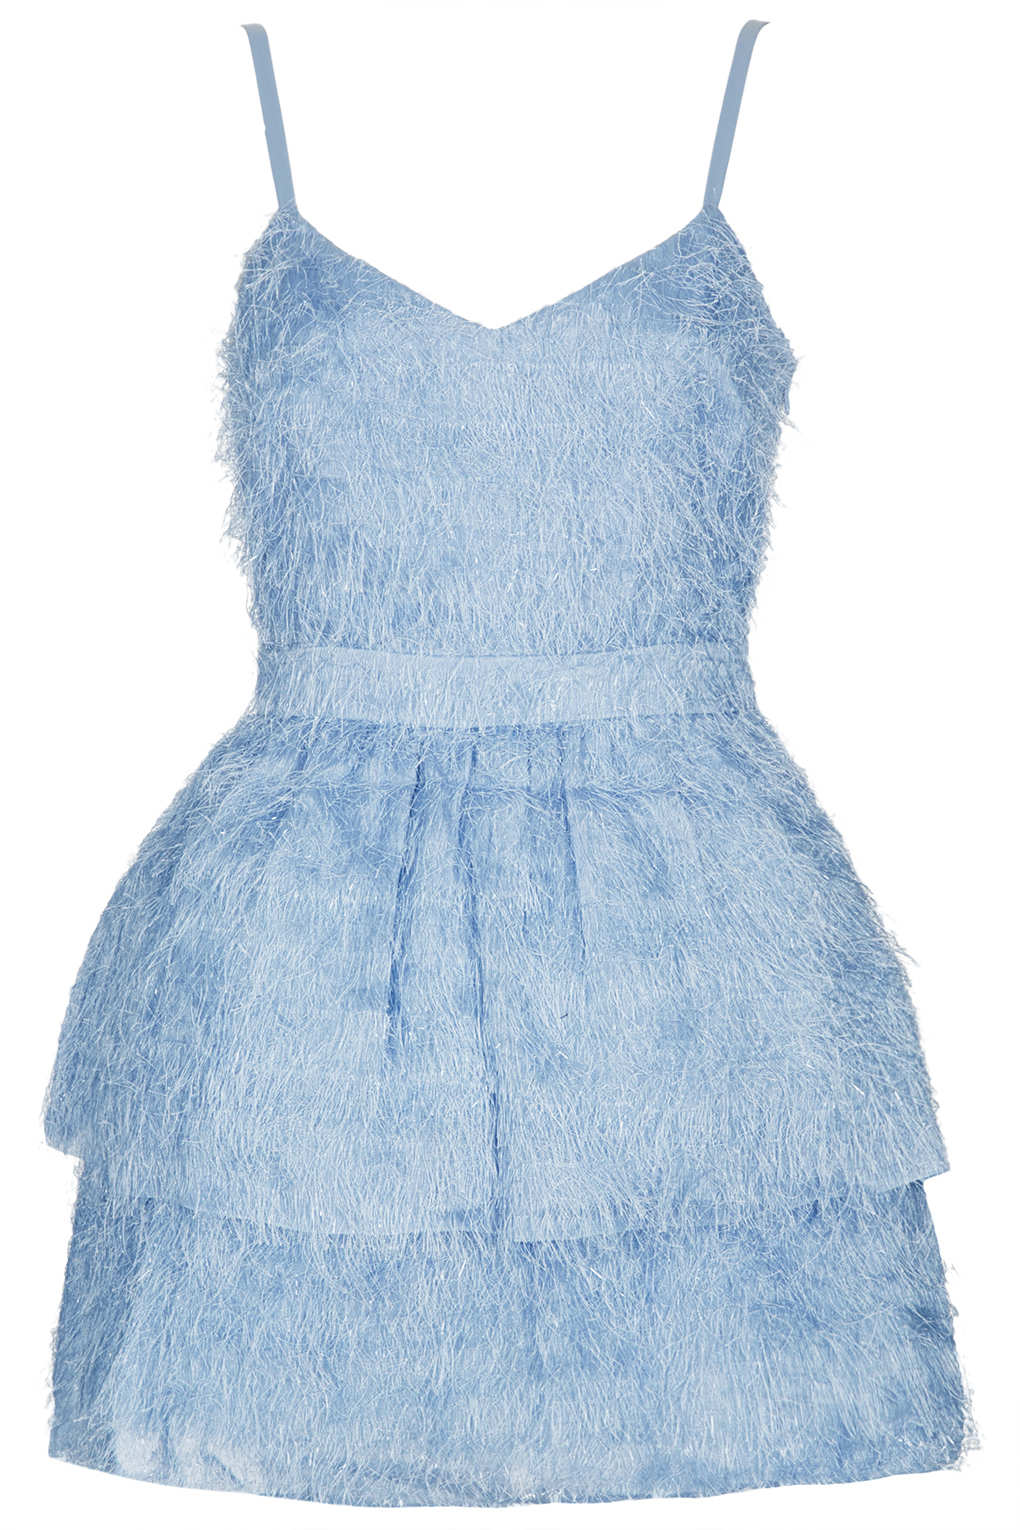 Lyst - Topshop Petite Feather Prom Dress in Blue